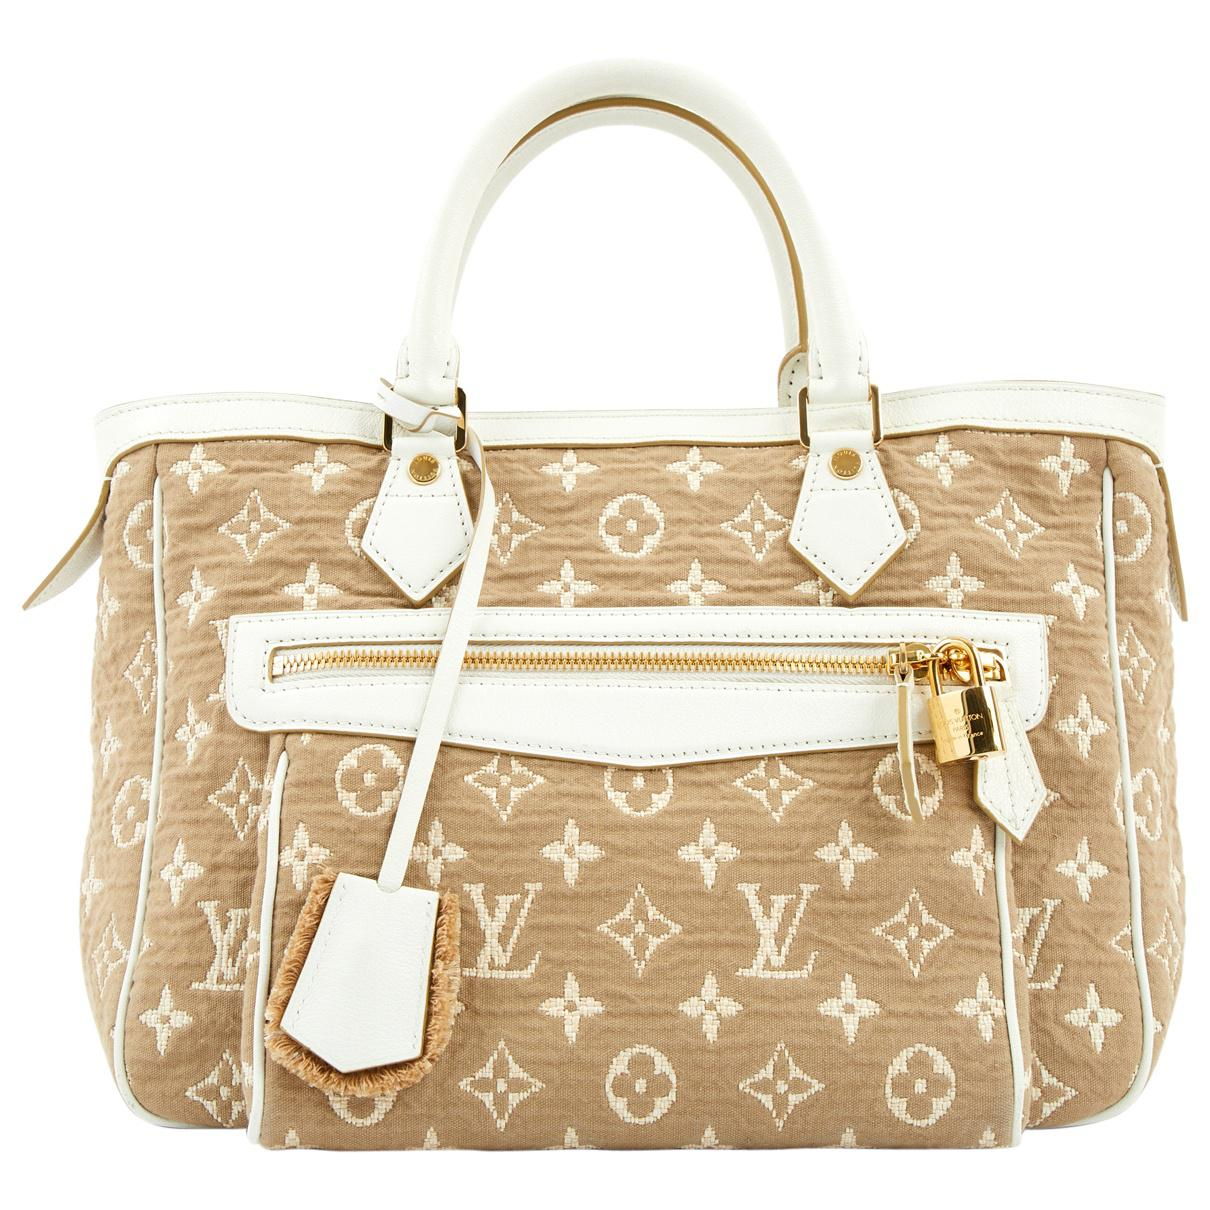 0555d890c915 Louis Vuitton Pre-owned Cloth Bag in Natural - Lyst